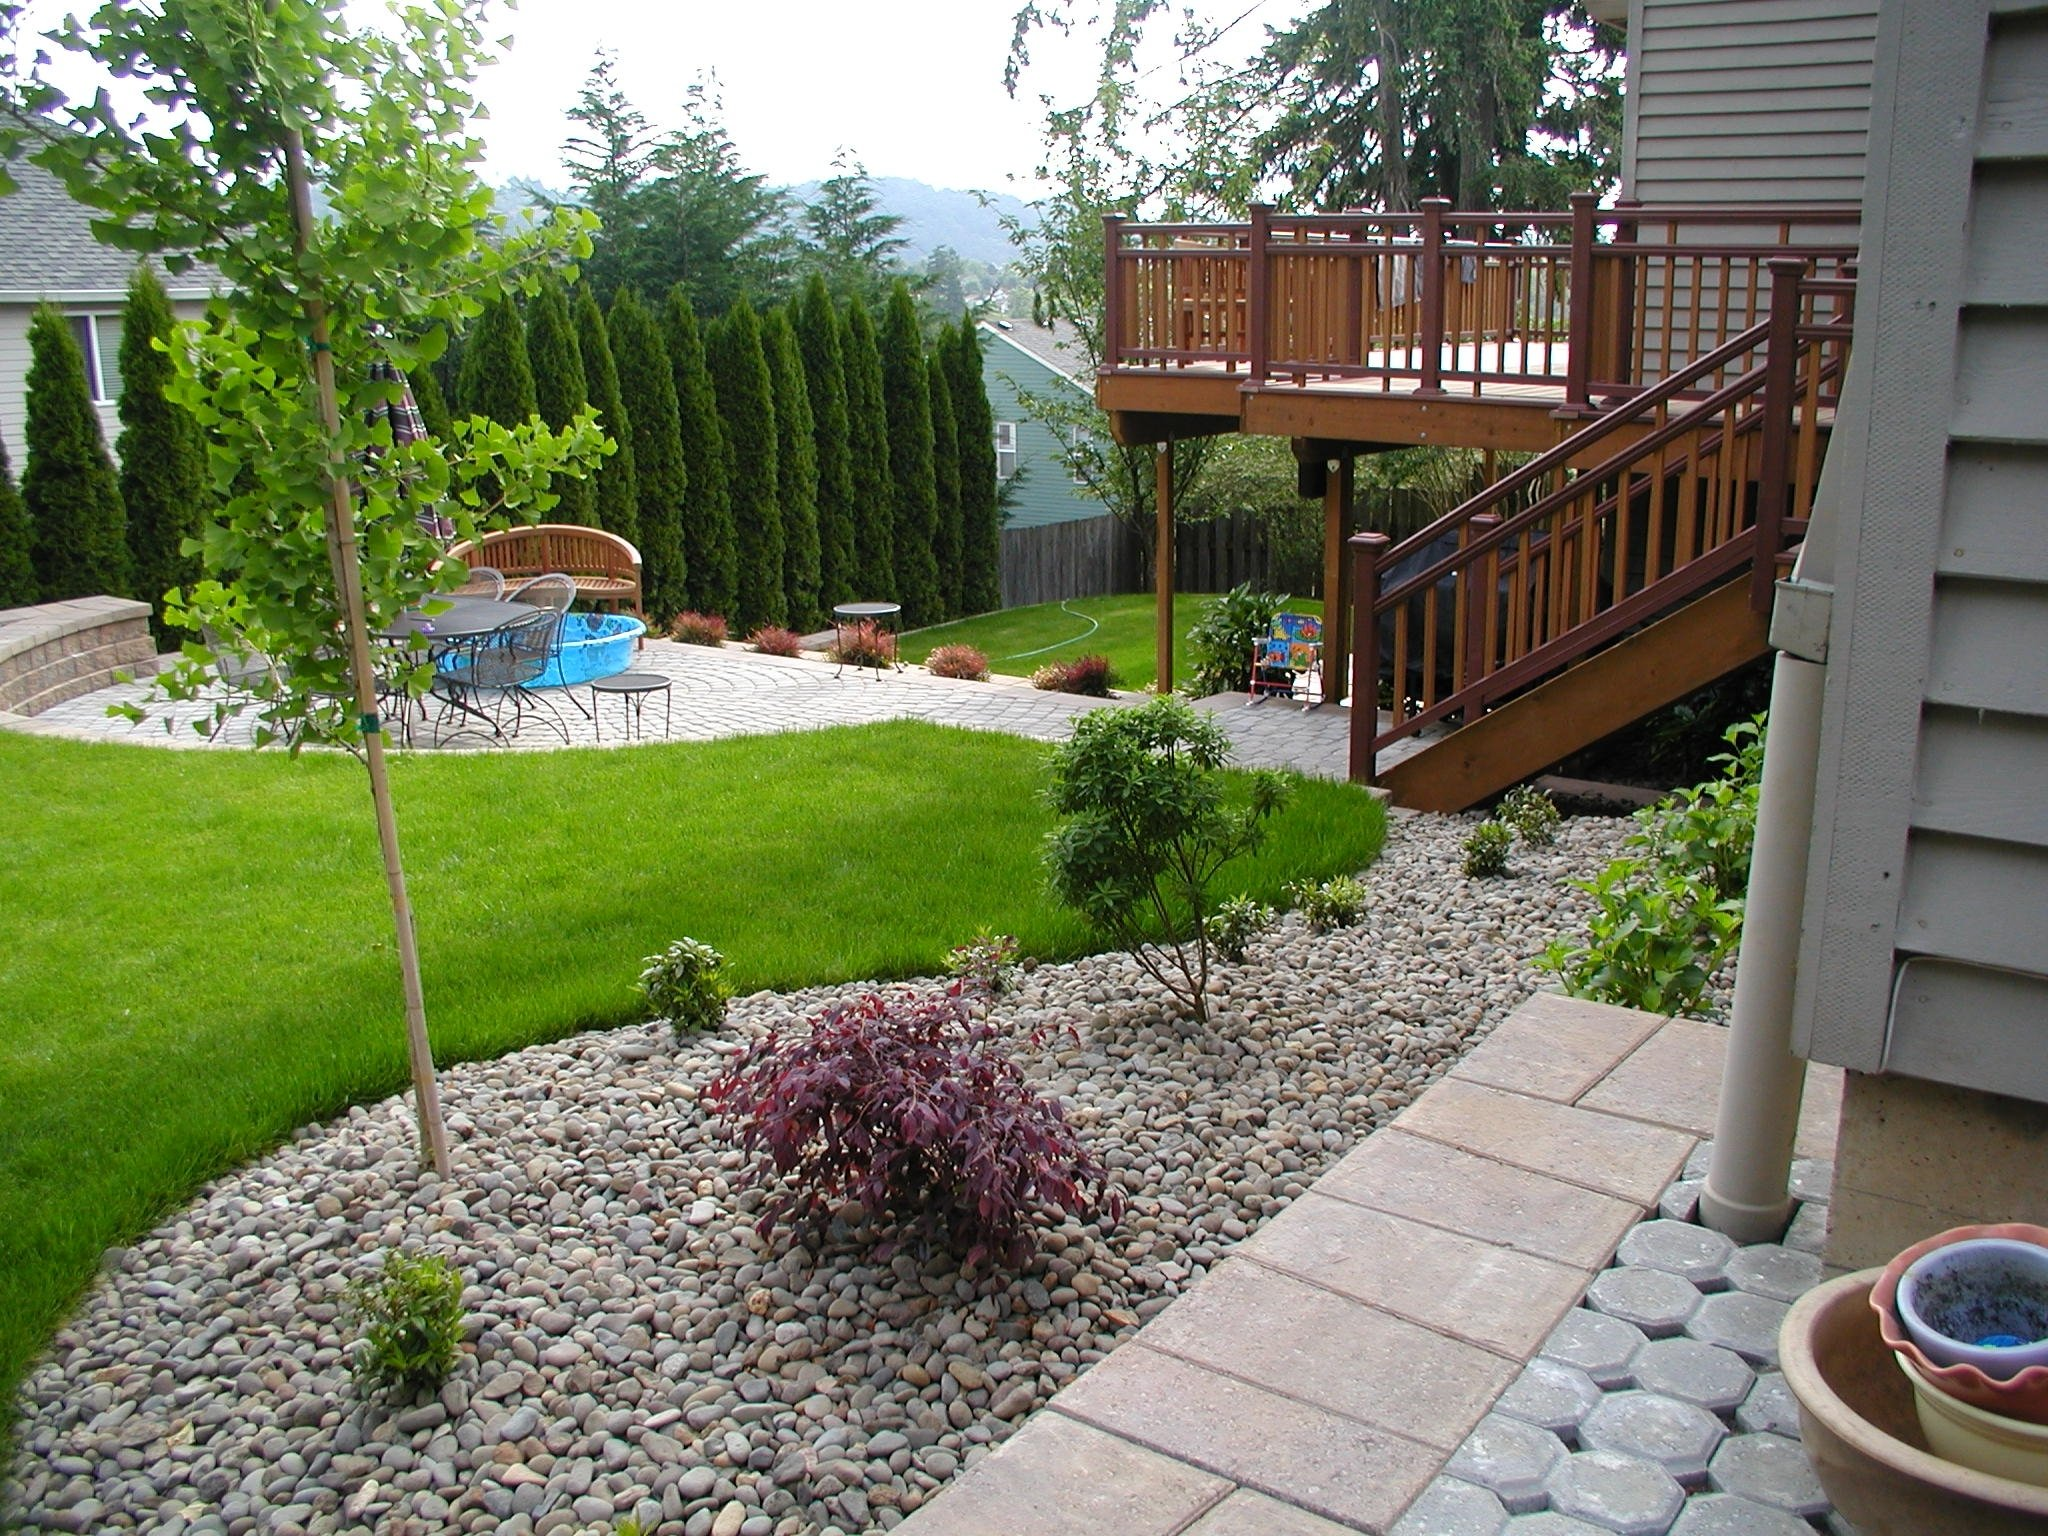 10 Trendy Cheap Landscaping Ideas For Backyard cheap landscaping ideas for backyard unique with image of cheap 2020